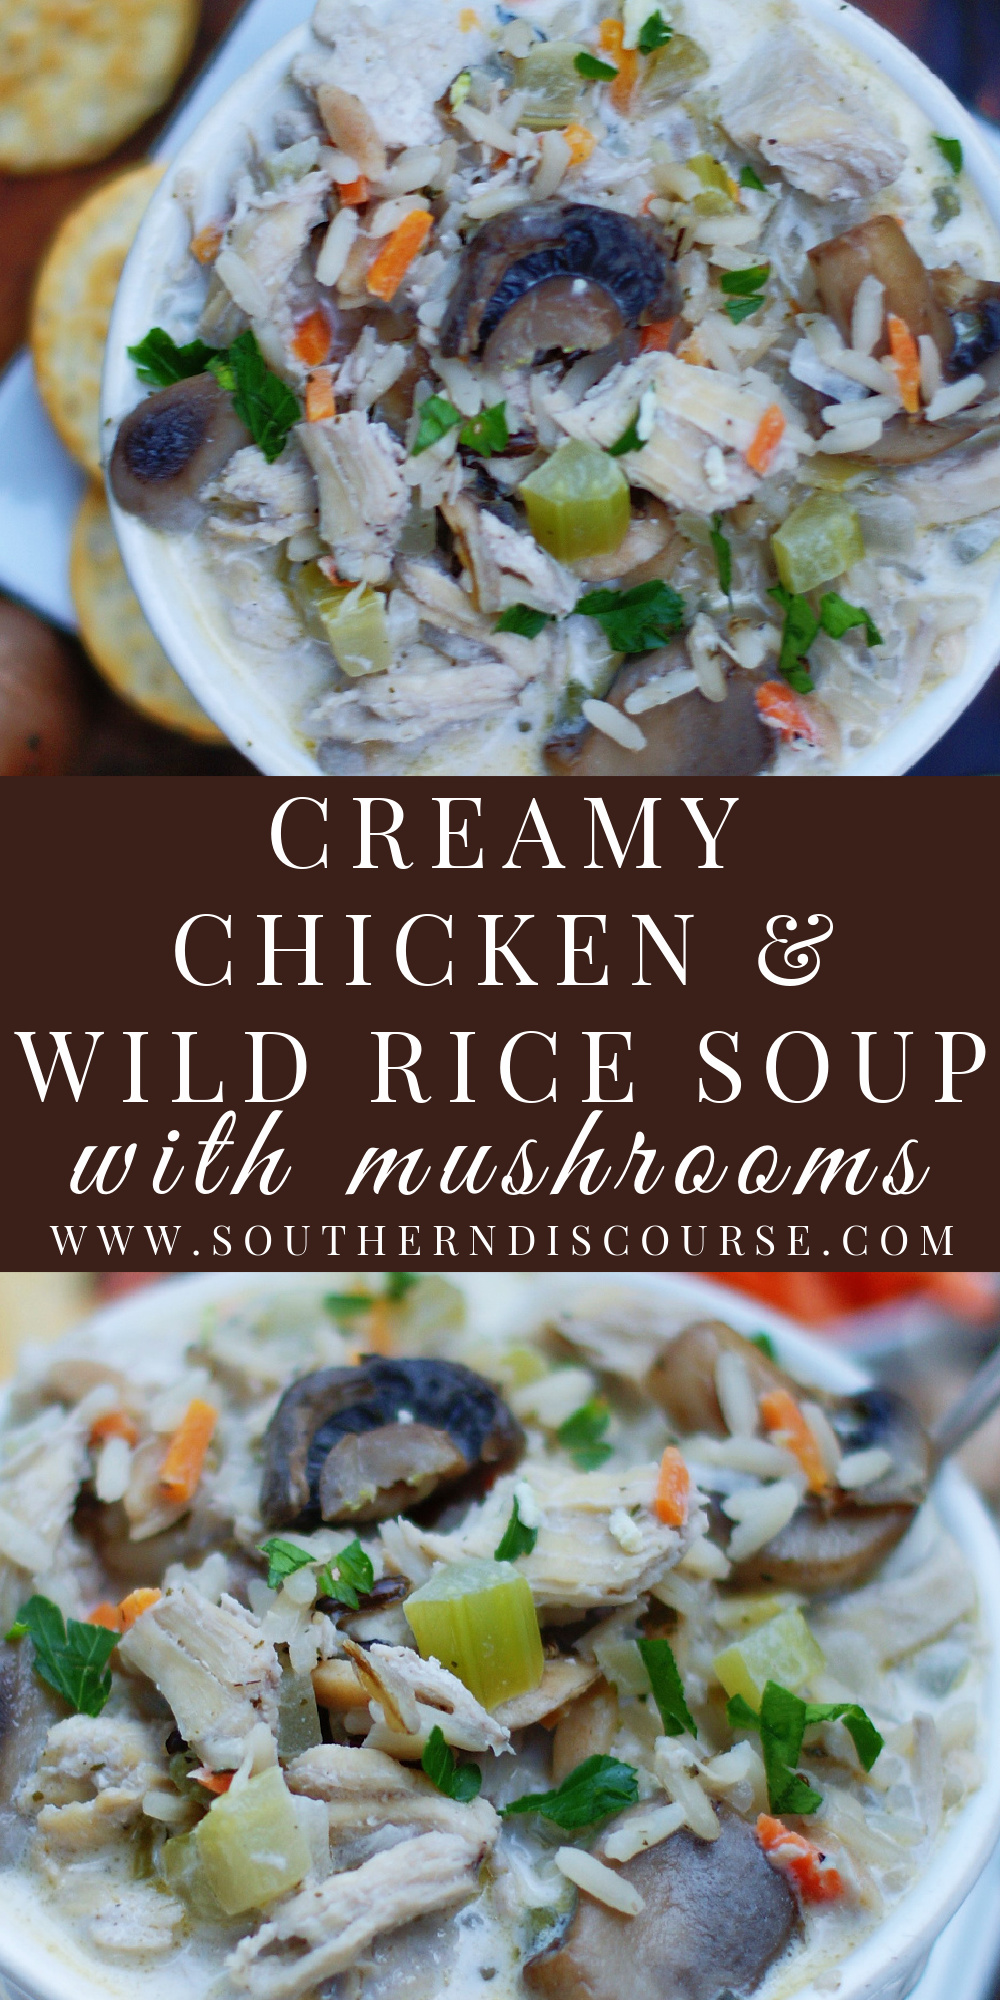 Whip up the cozy, familiar feels of home with comforting Chicken and Wild Rice Soup with Portabella Mushrooms. Loaded with carrots, celery, onion, rich wild rice, chicken, sliced mushrooms and a luscious creamy base, this easy homemade soup recipe is guaranteed to warm you heart and soul.